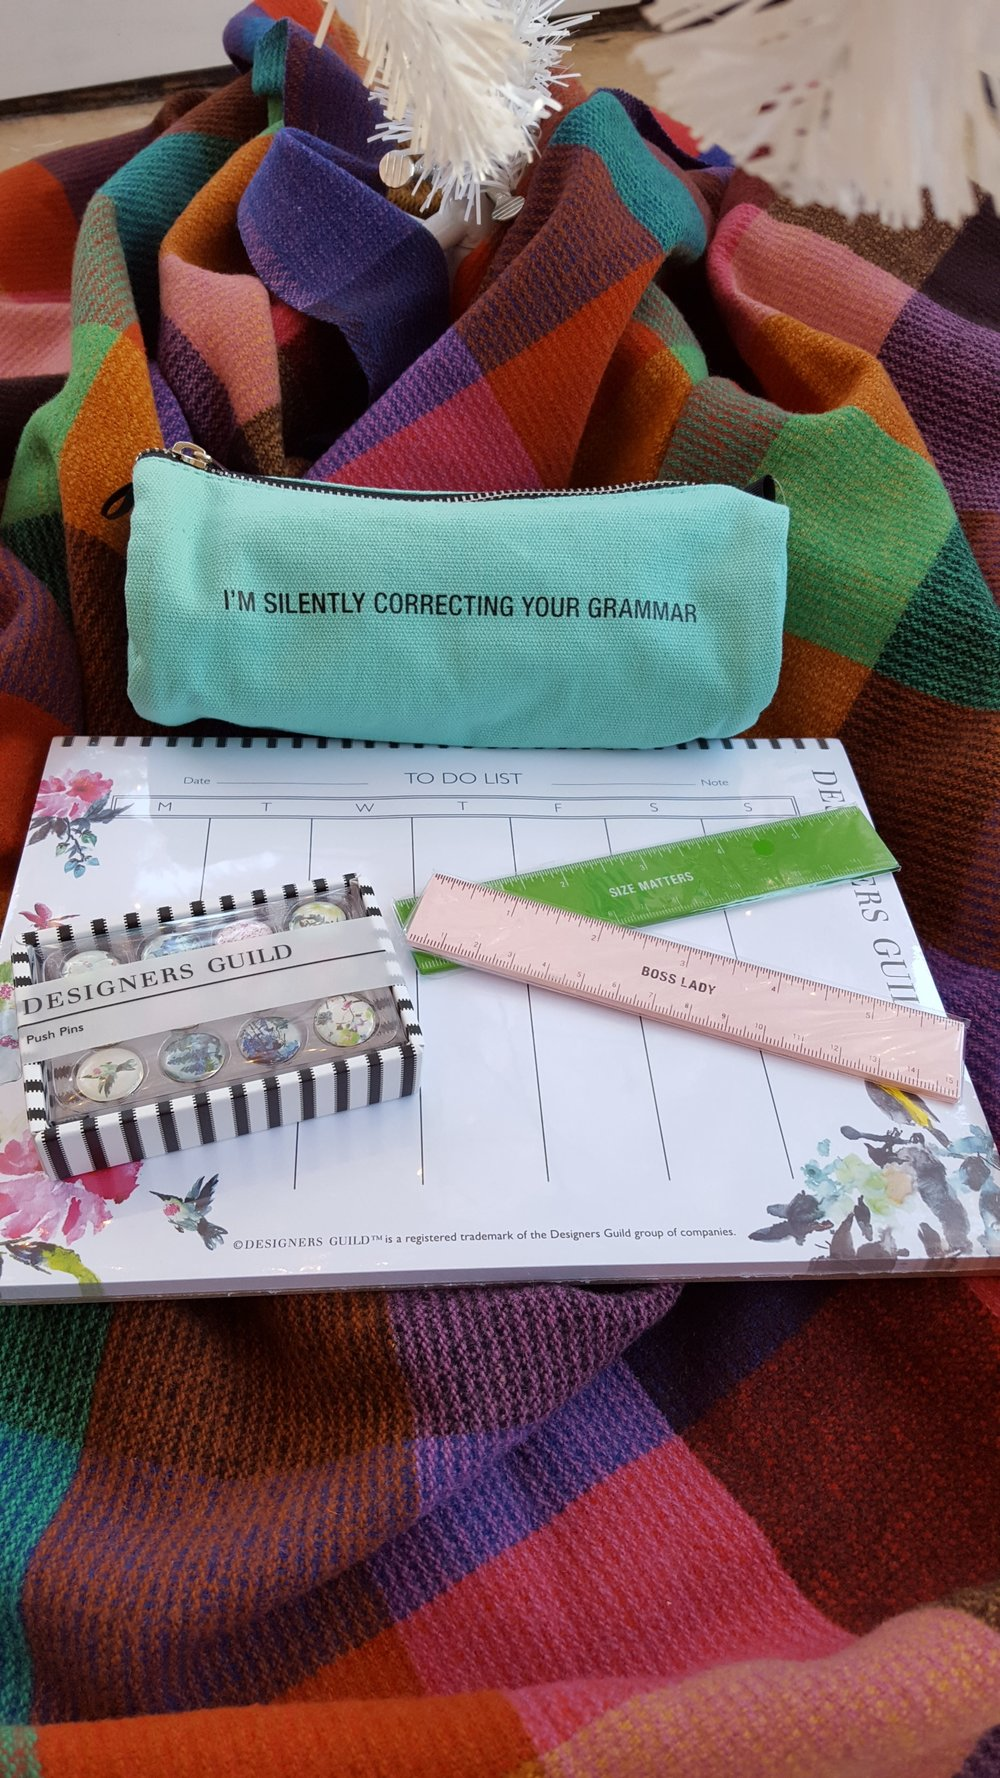 Pencil case: $10, Rulers: $4 each, To Do pad: $!8, Push pins: $13